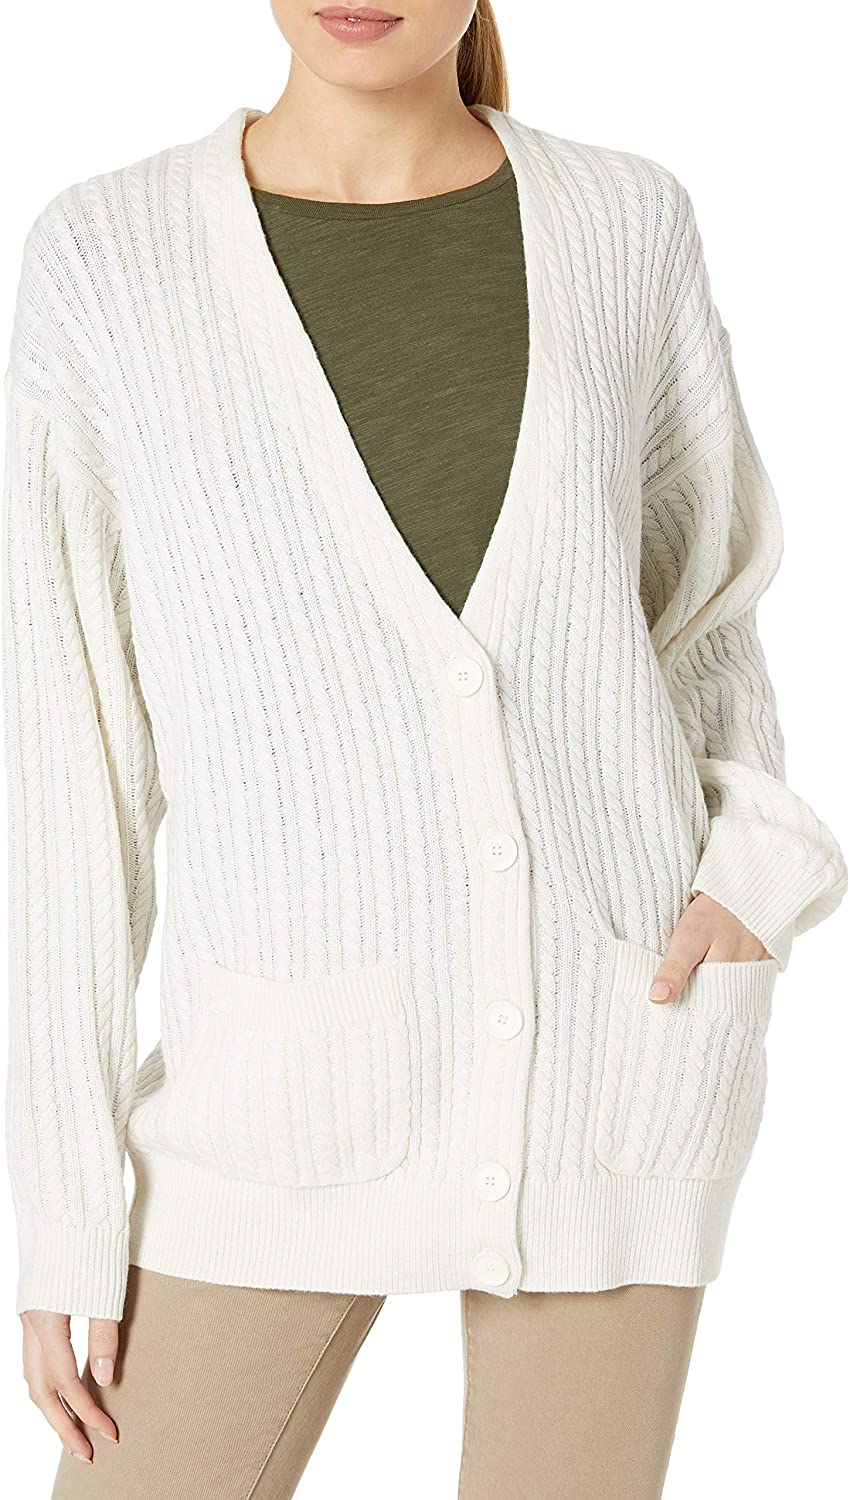 Lacoste Womens Long Sleeve V-Neck Long Chunky Cable Knit Cardigan Sweater